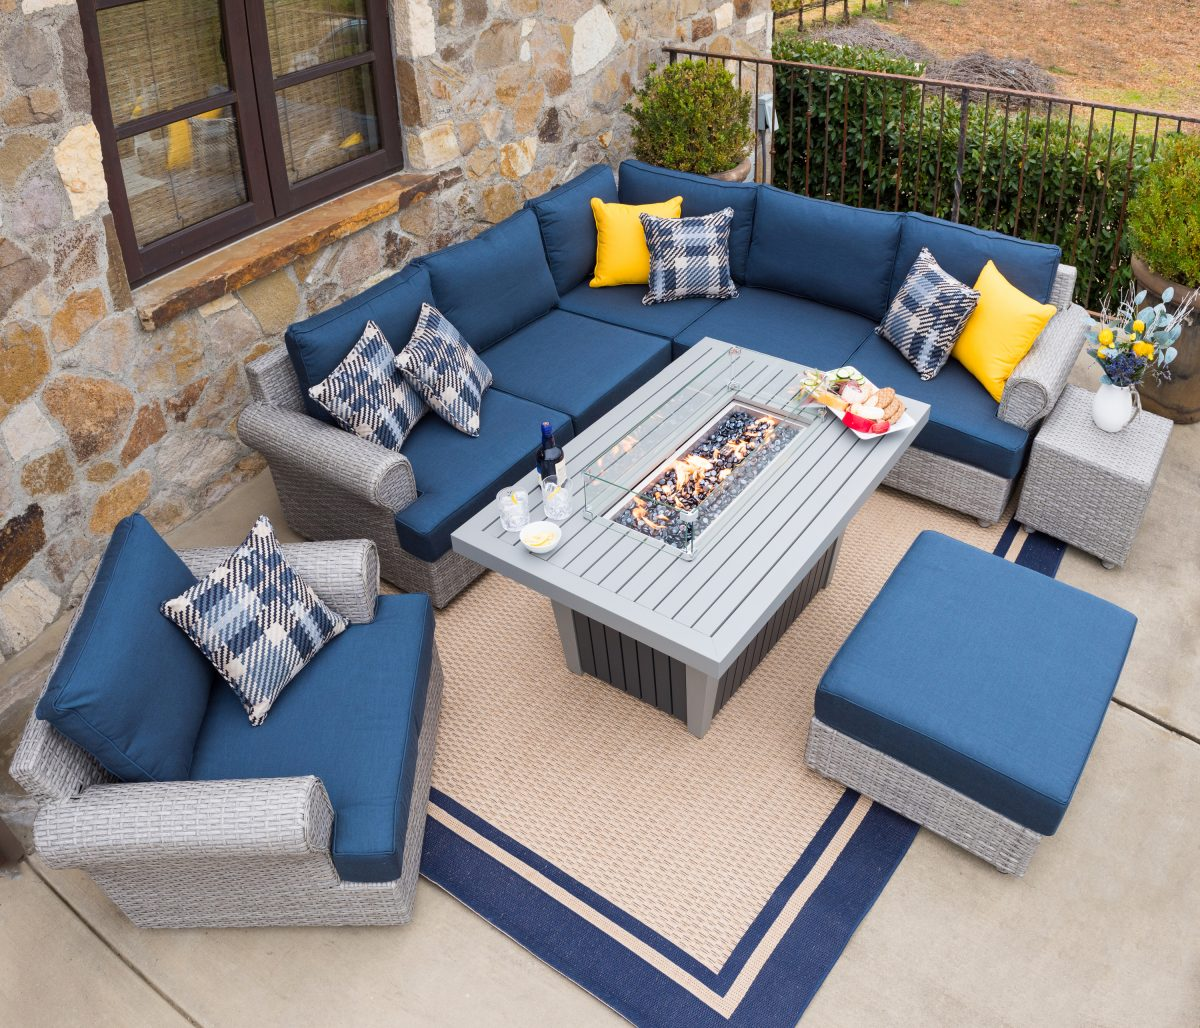 Arrange Patio Furniture